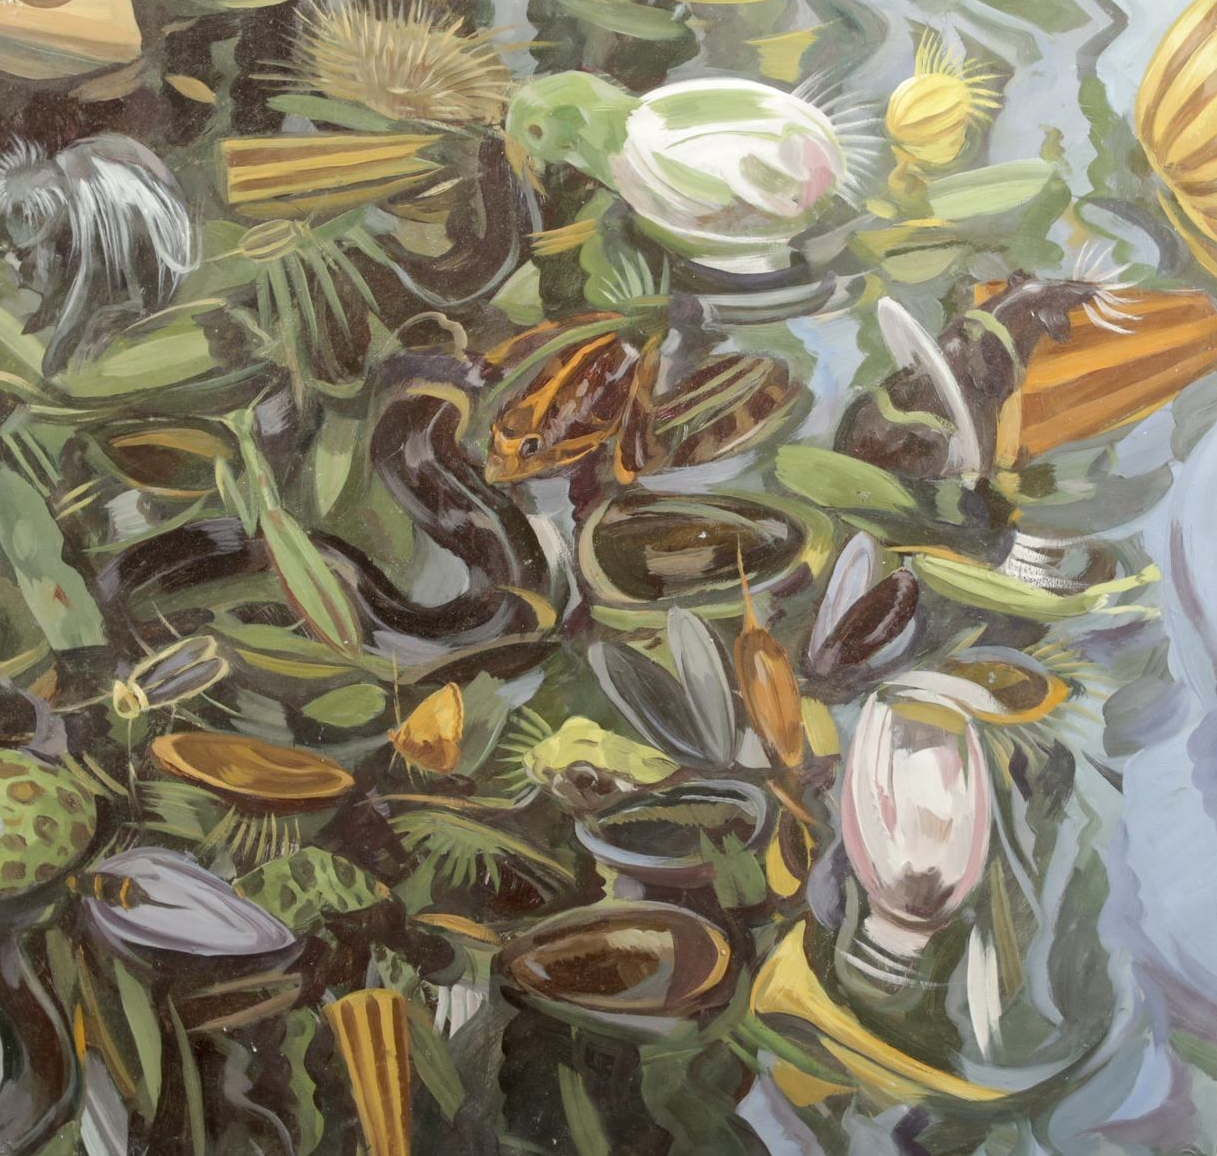 Frogs and Mussels